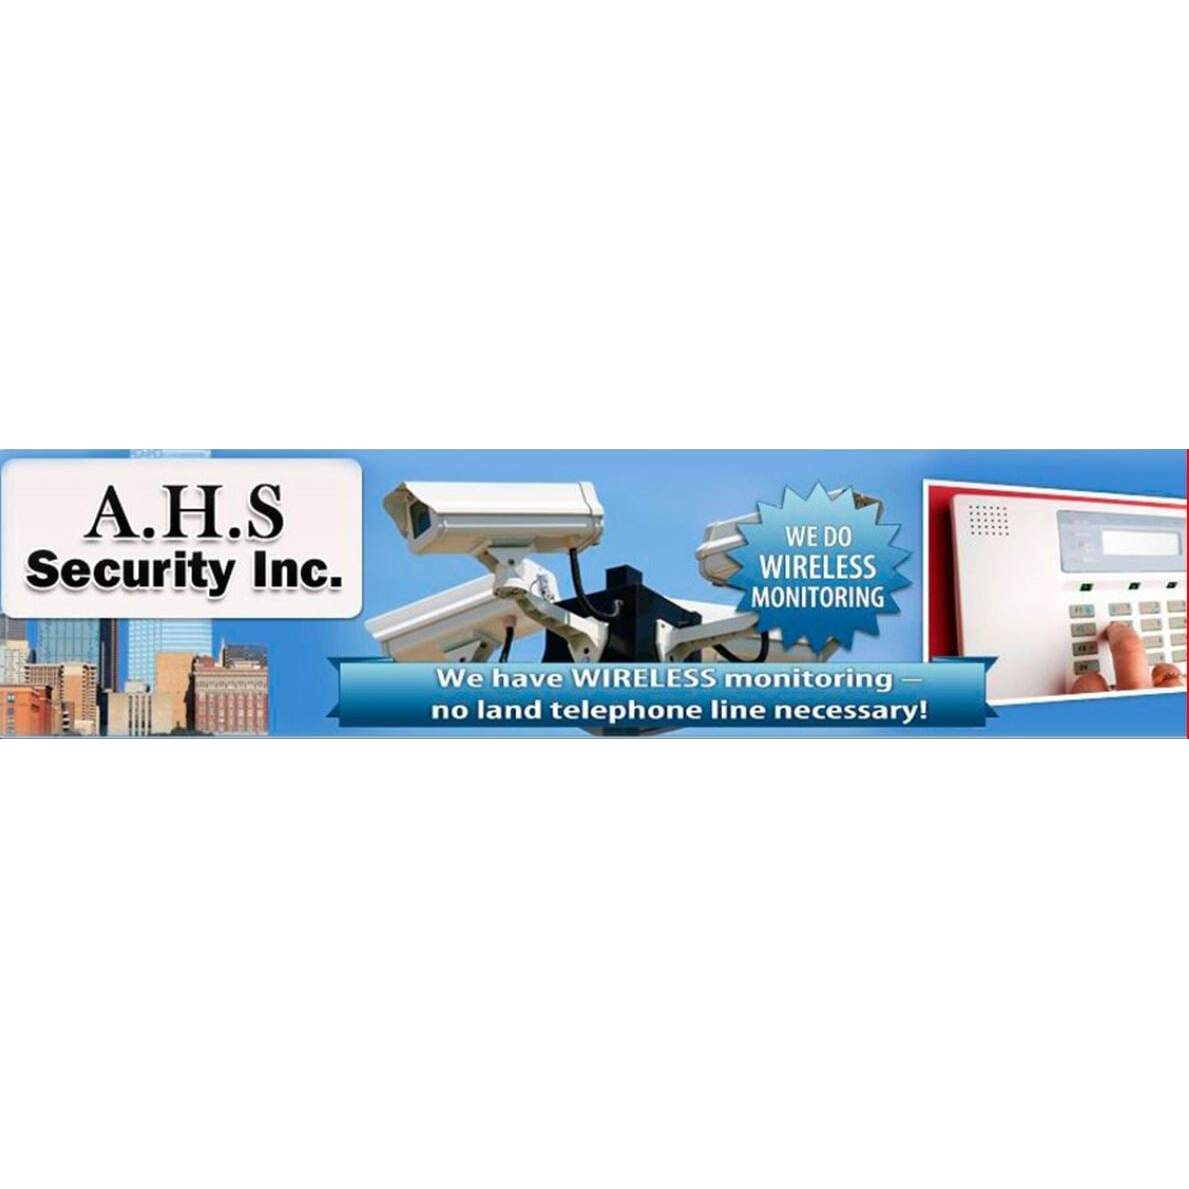 A.H.S. Security Inc.